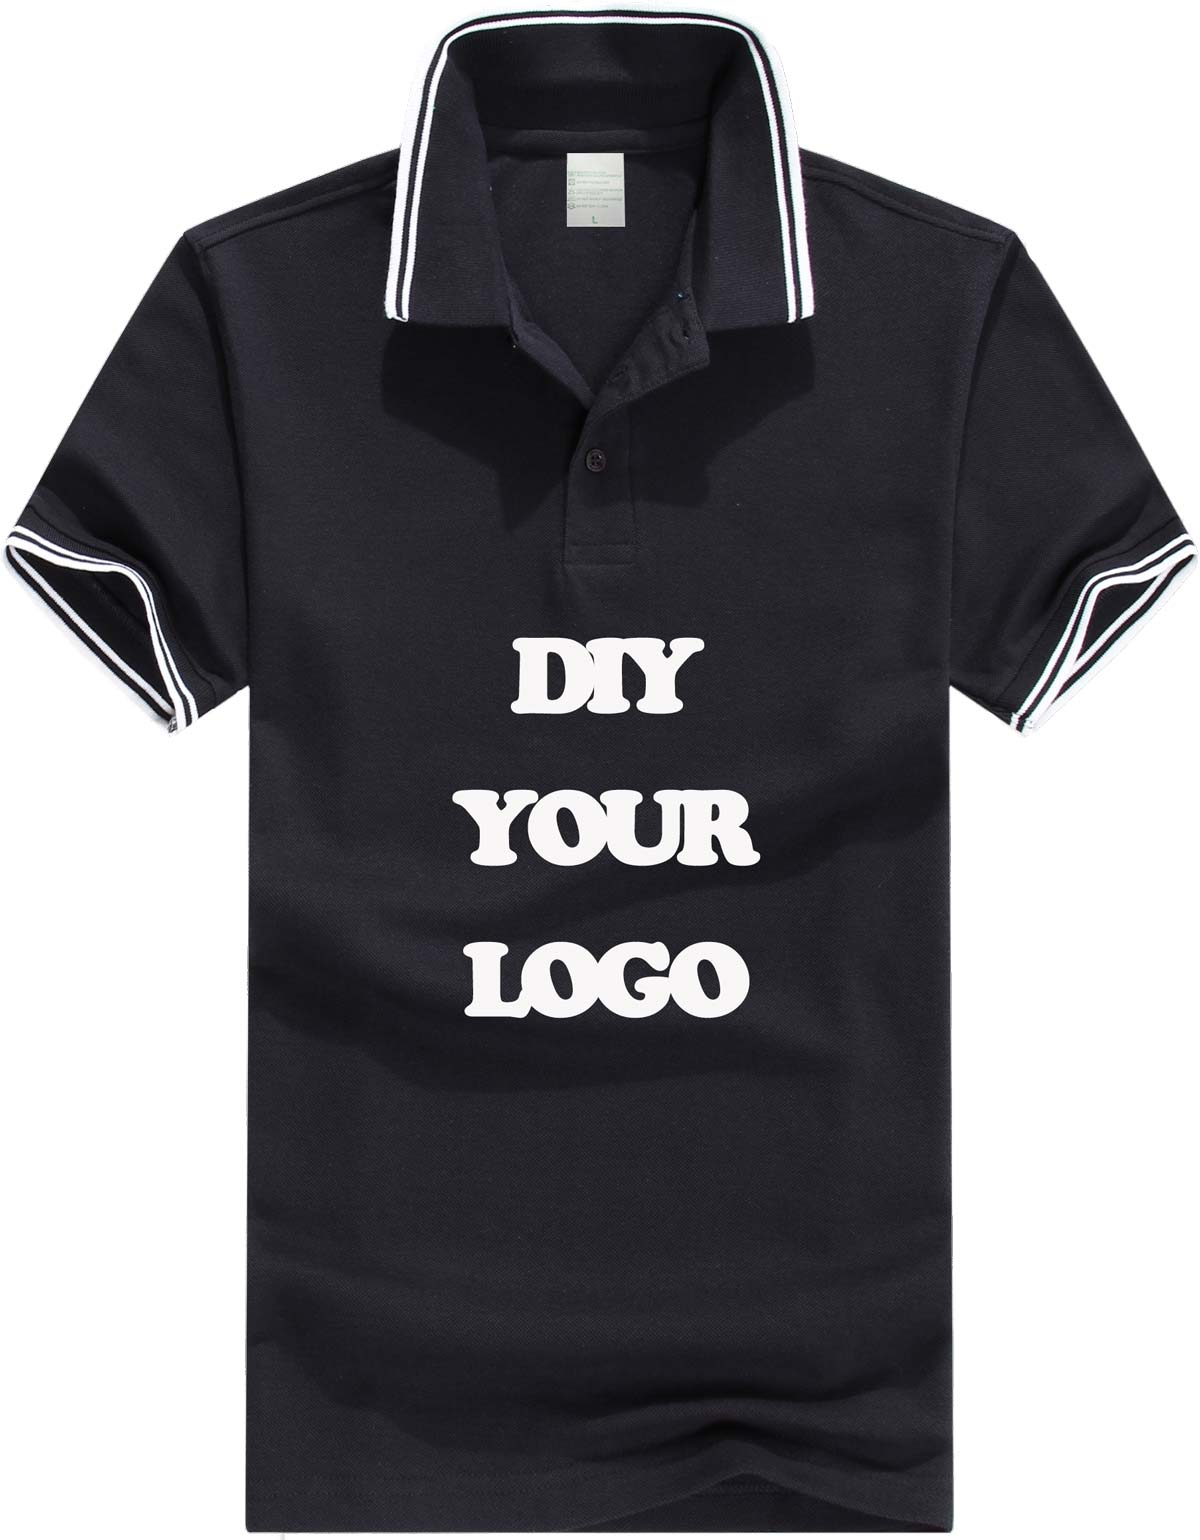 100 180g pique cotton men polo shirt personalized logo for Shirts with custom logo